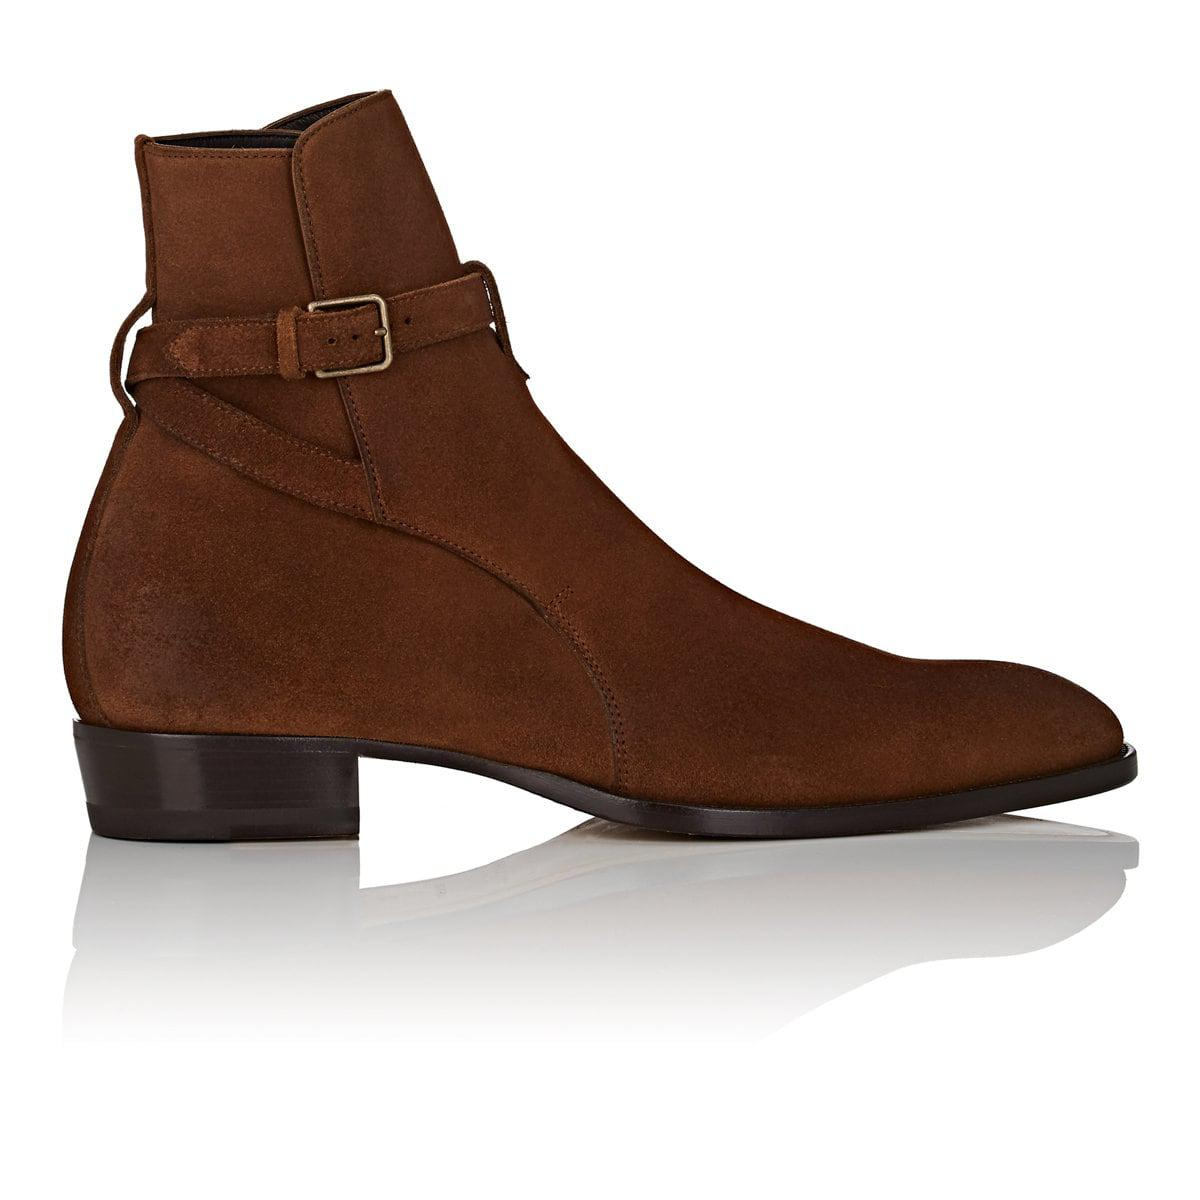 Cheap Sale Deals Wyatt Oiled-suede Harness Boots Saint Laurent Sale In China Clearance Finishline Cheap Sale Footlocker Pictures Outlet 2018 New RJ8c82